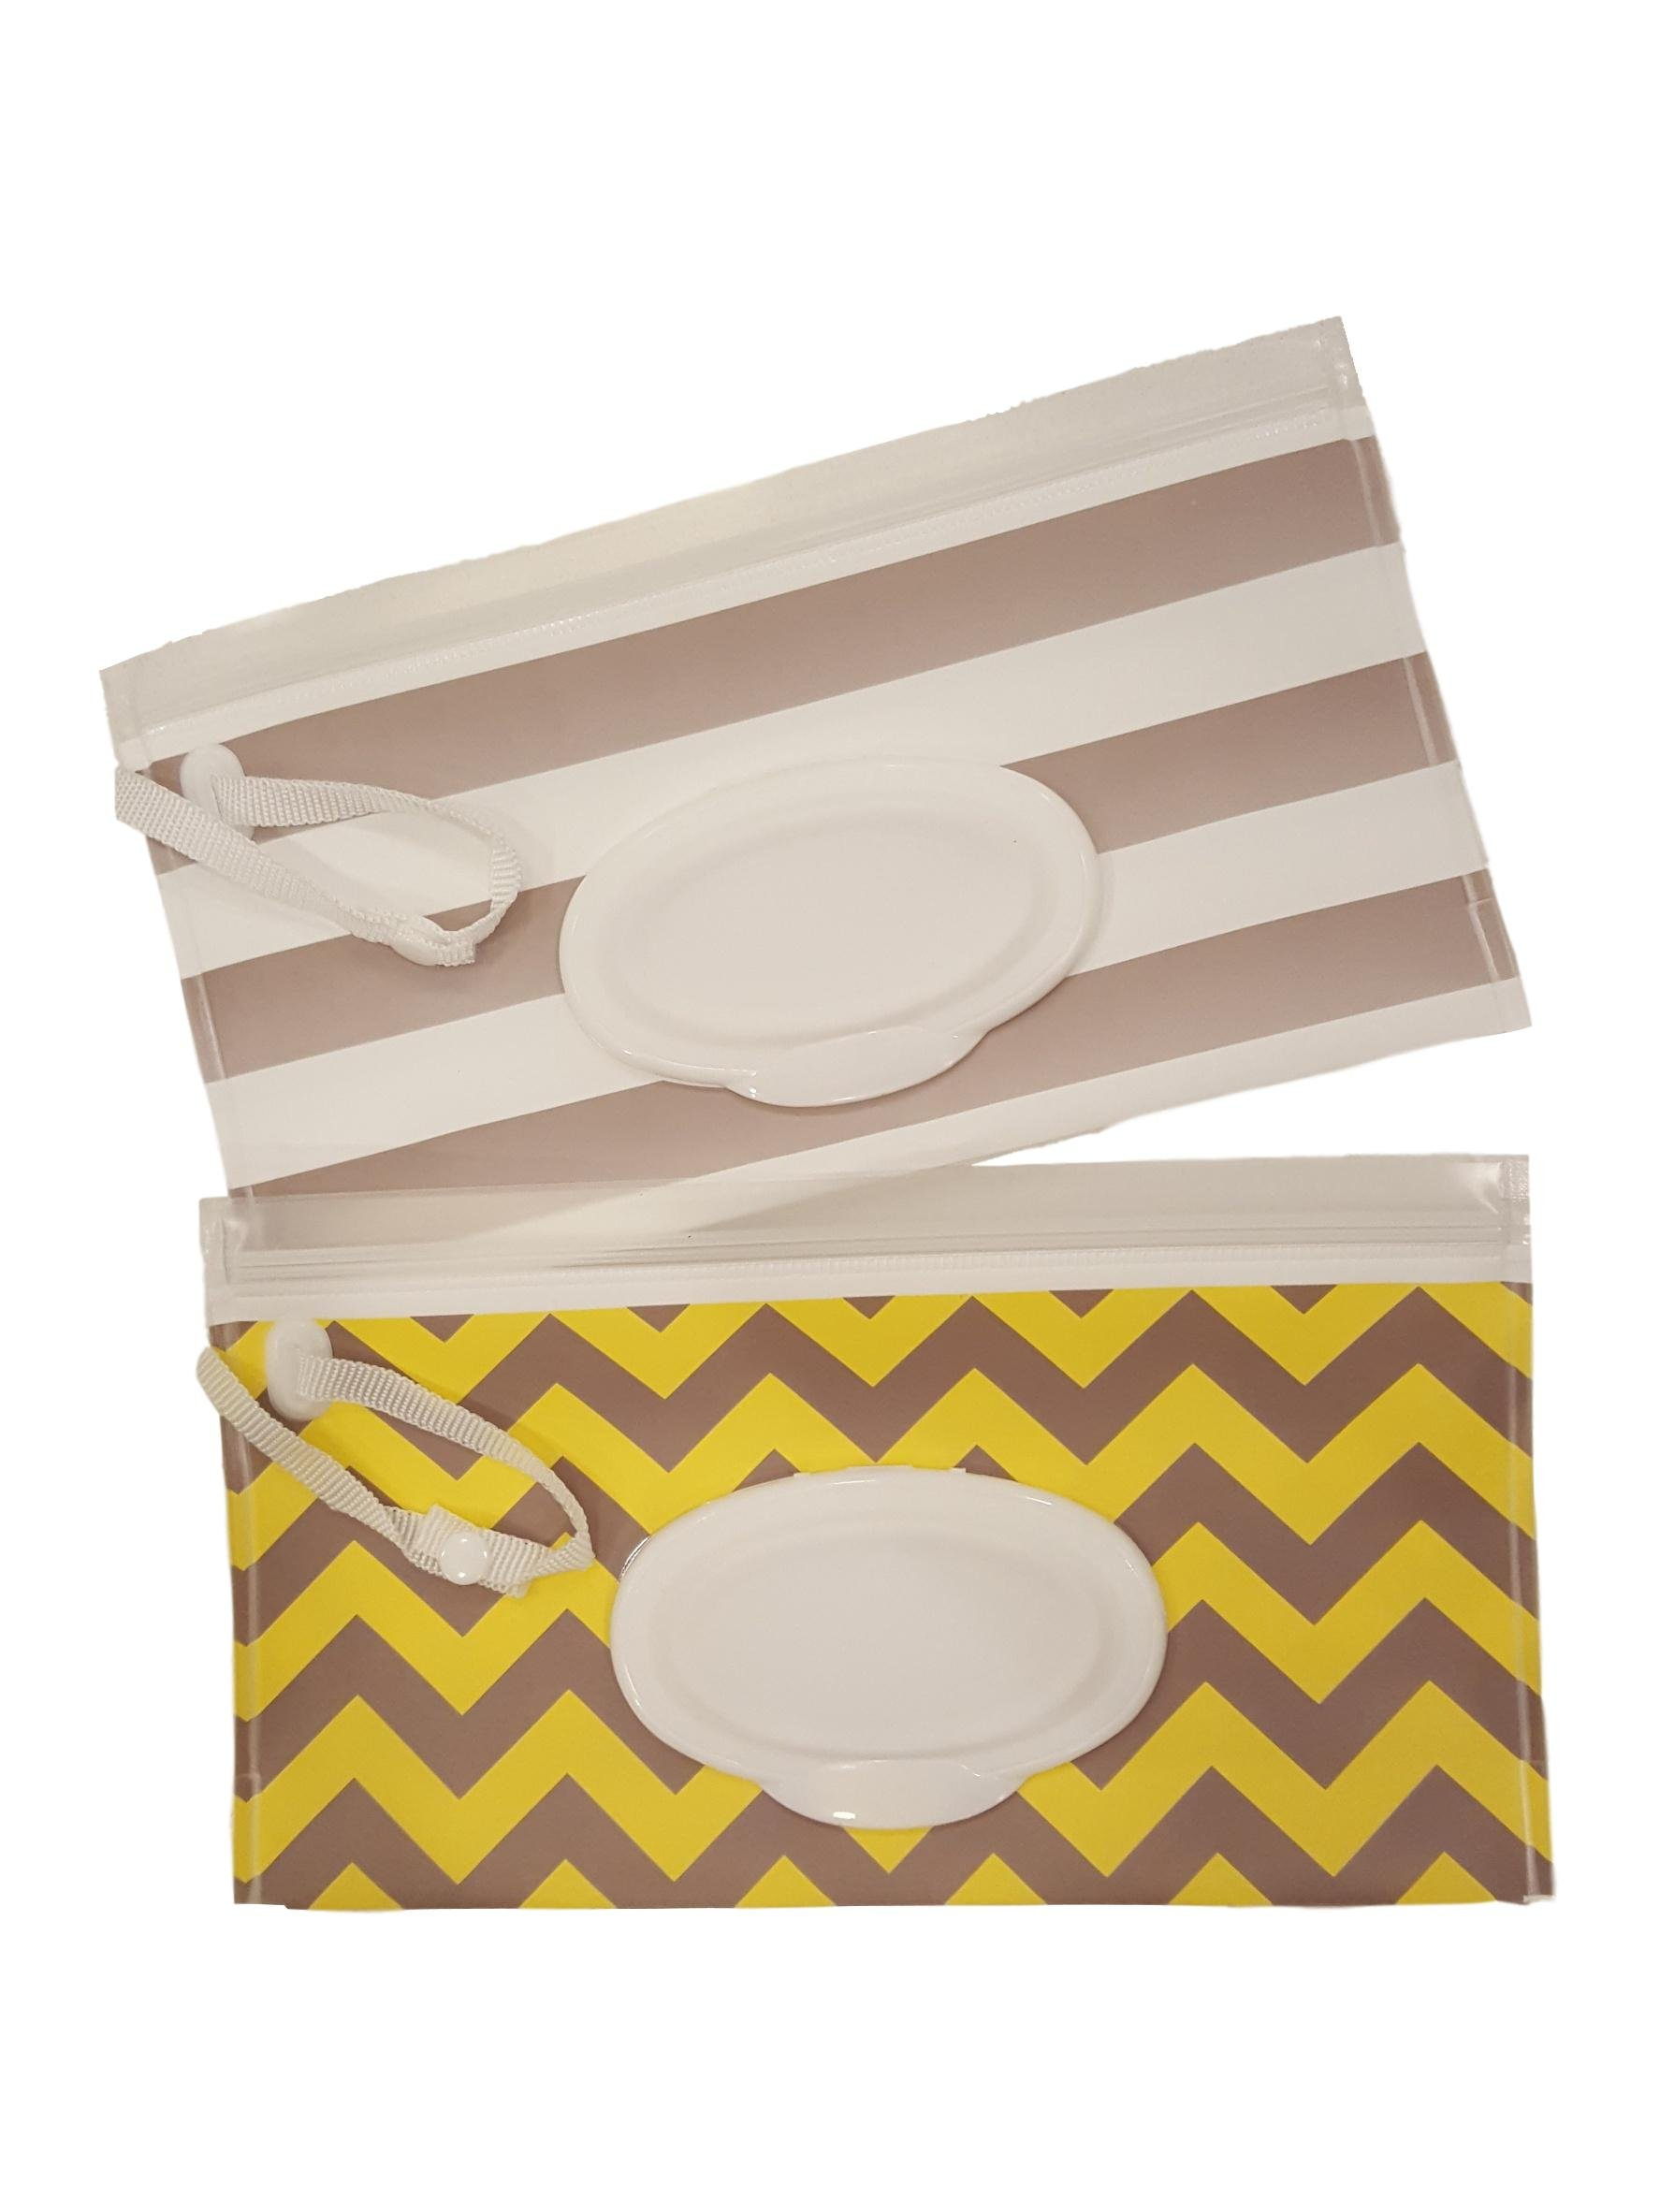 Little Stinker 2 Pack Baby Wipe Case Holder - Keeps Wipes Moist - Premium Wetwipe Cases - 1 White 1 Yellow